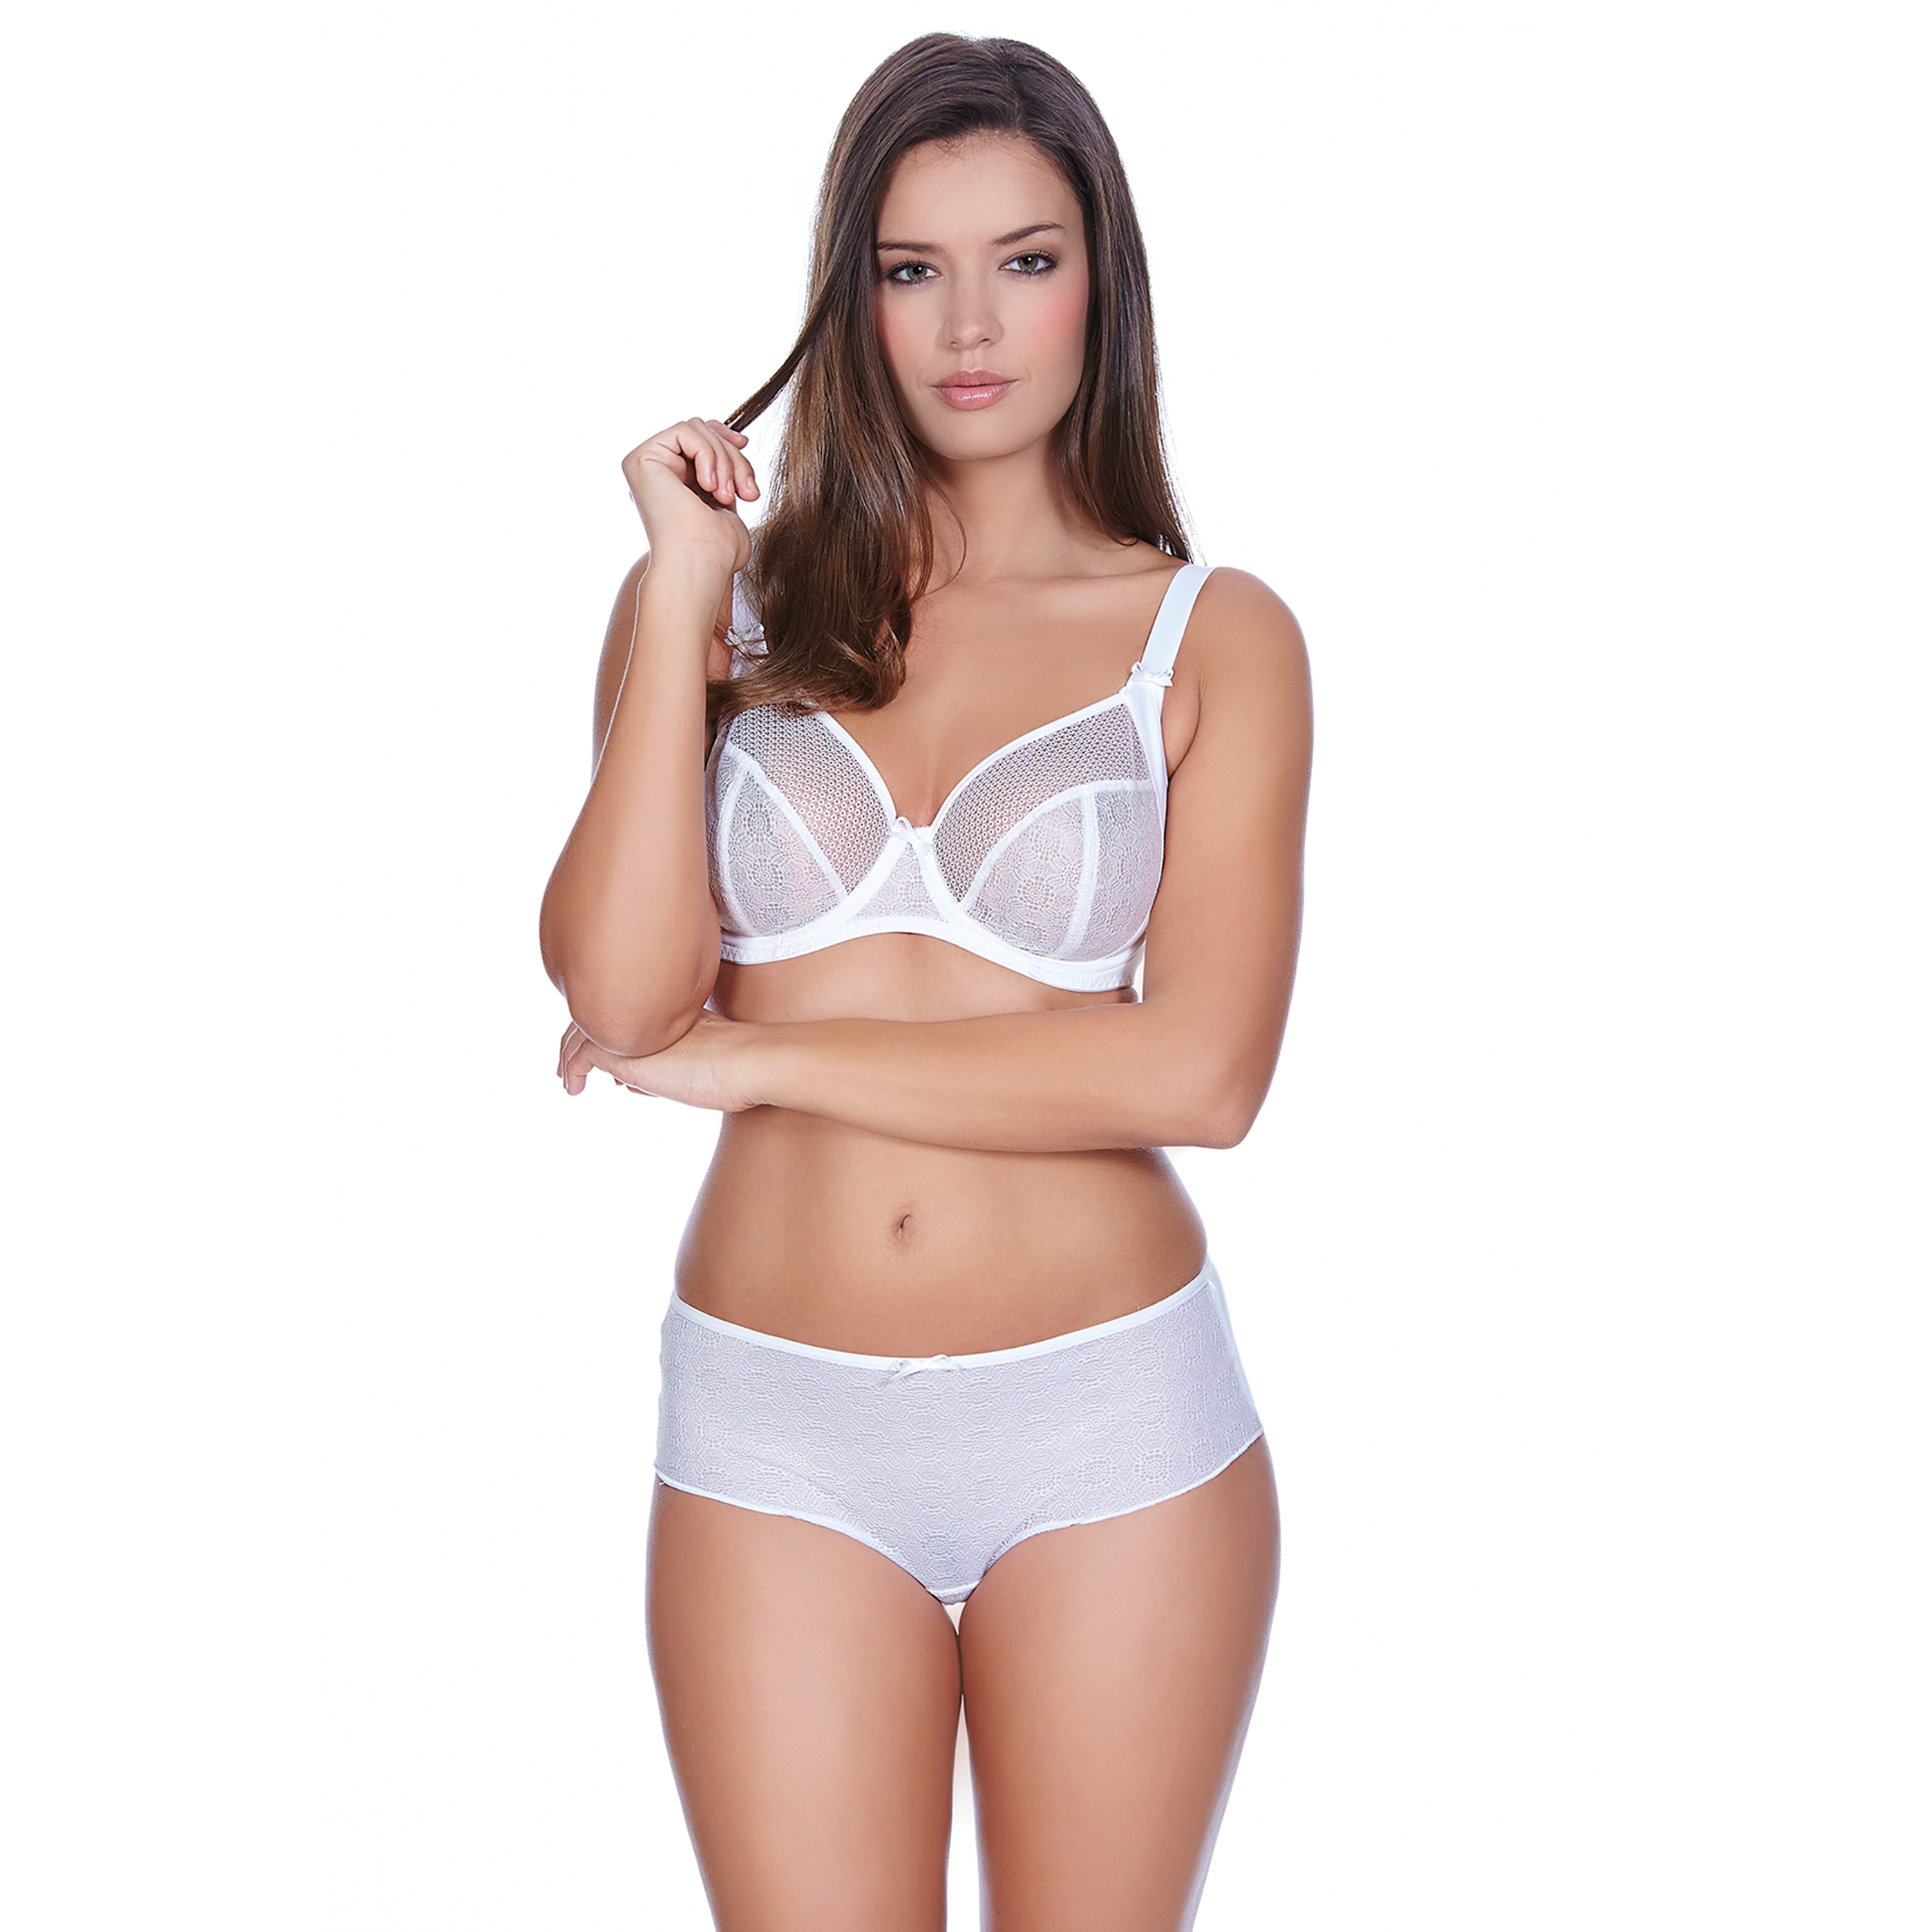 Freya Hero White bra